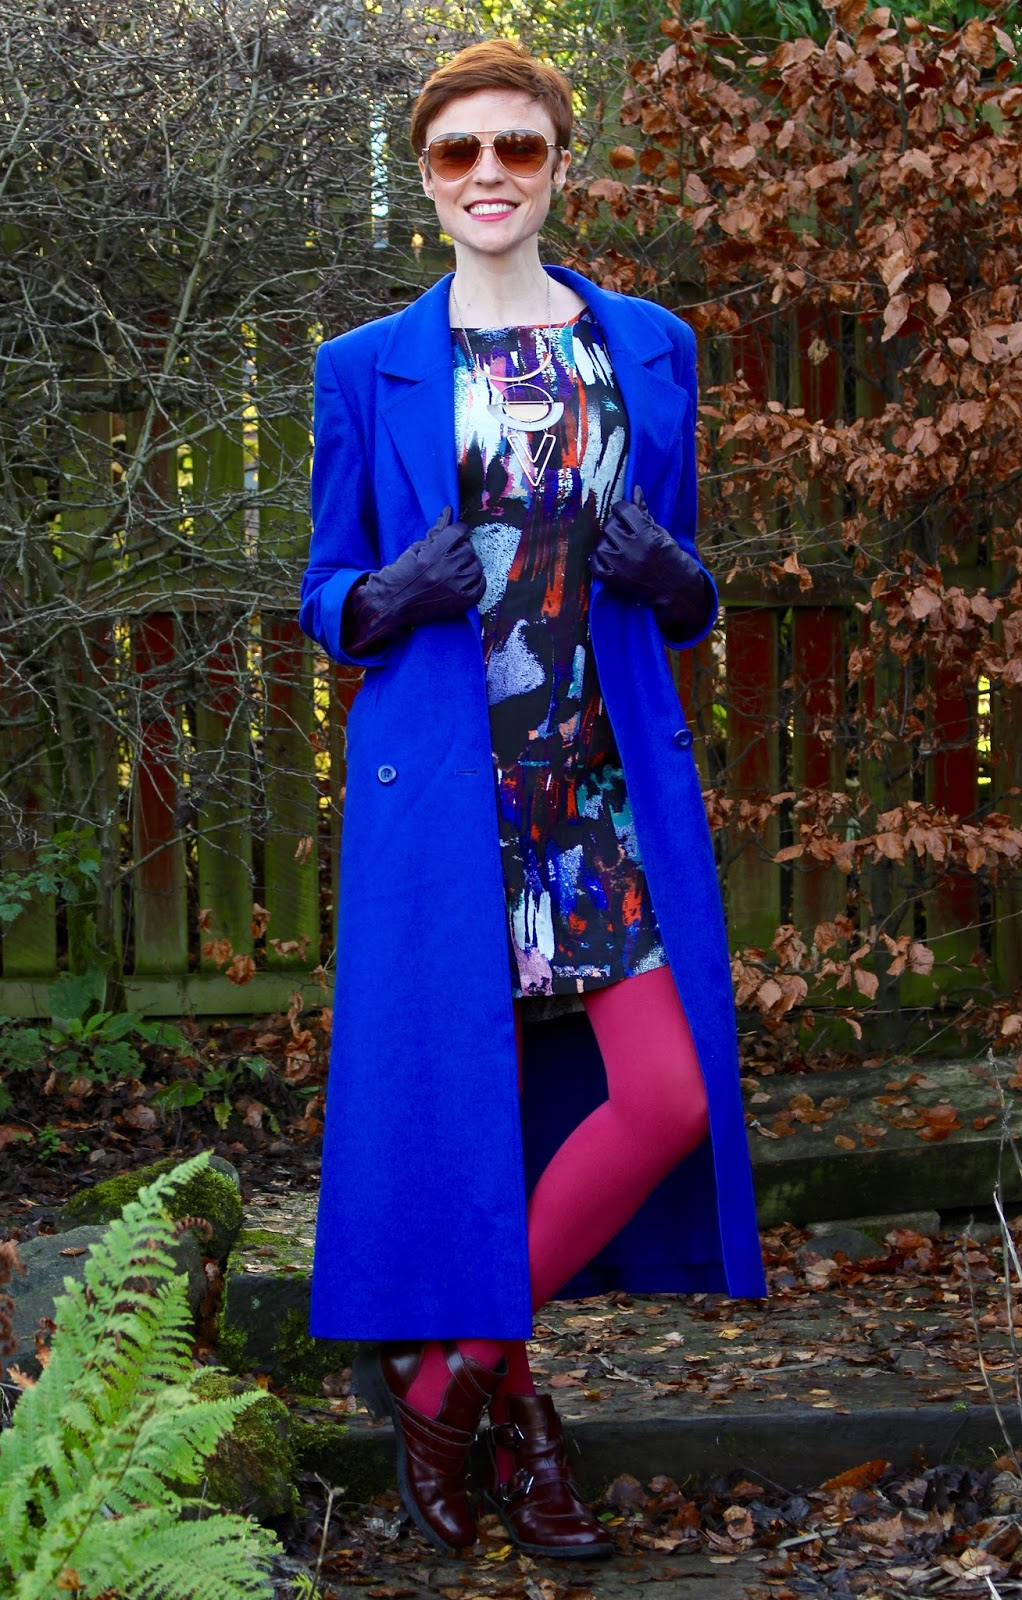 Wearing bright colours | Cobalt and pink | Fake fabulous